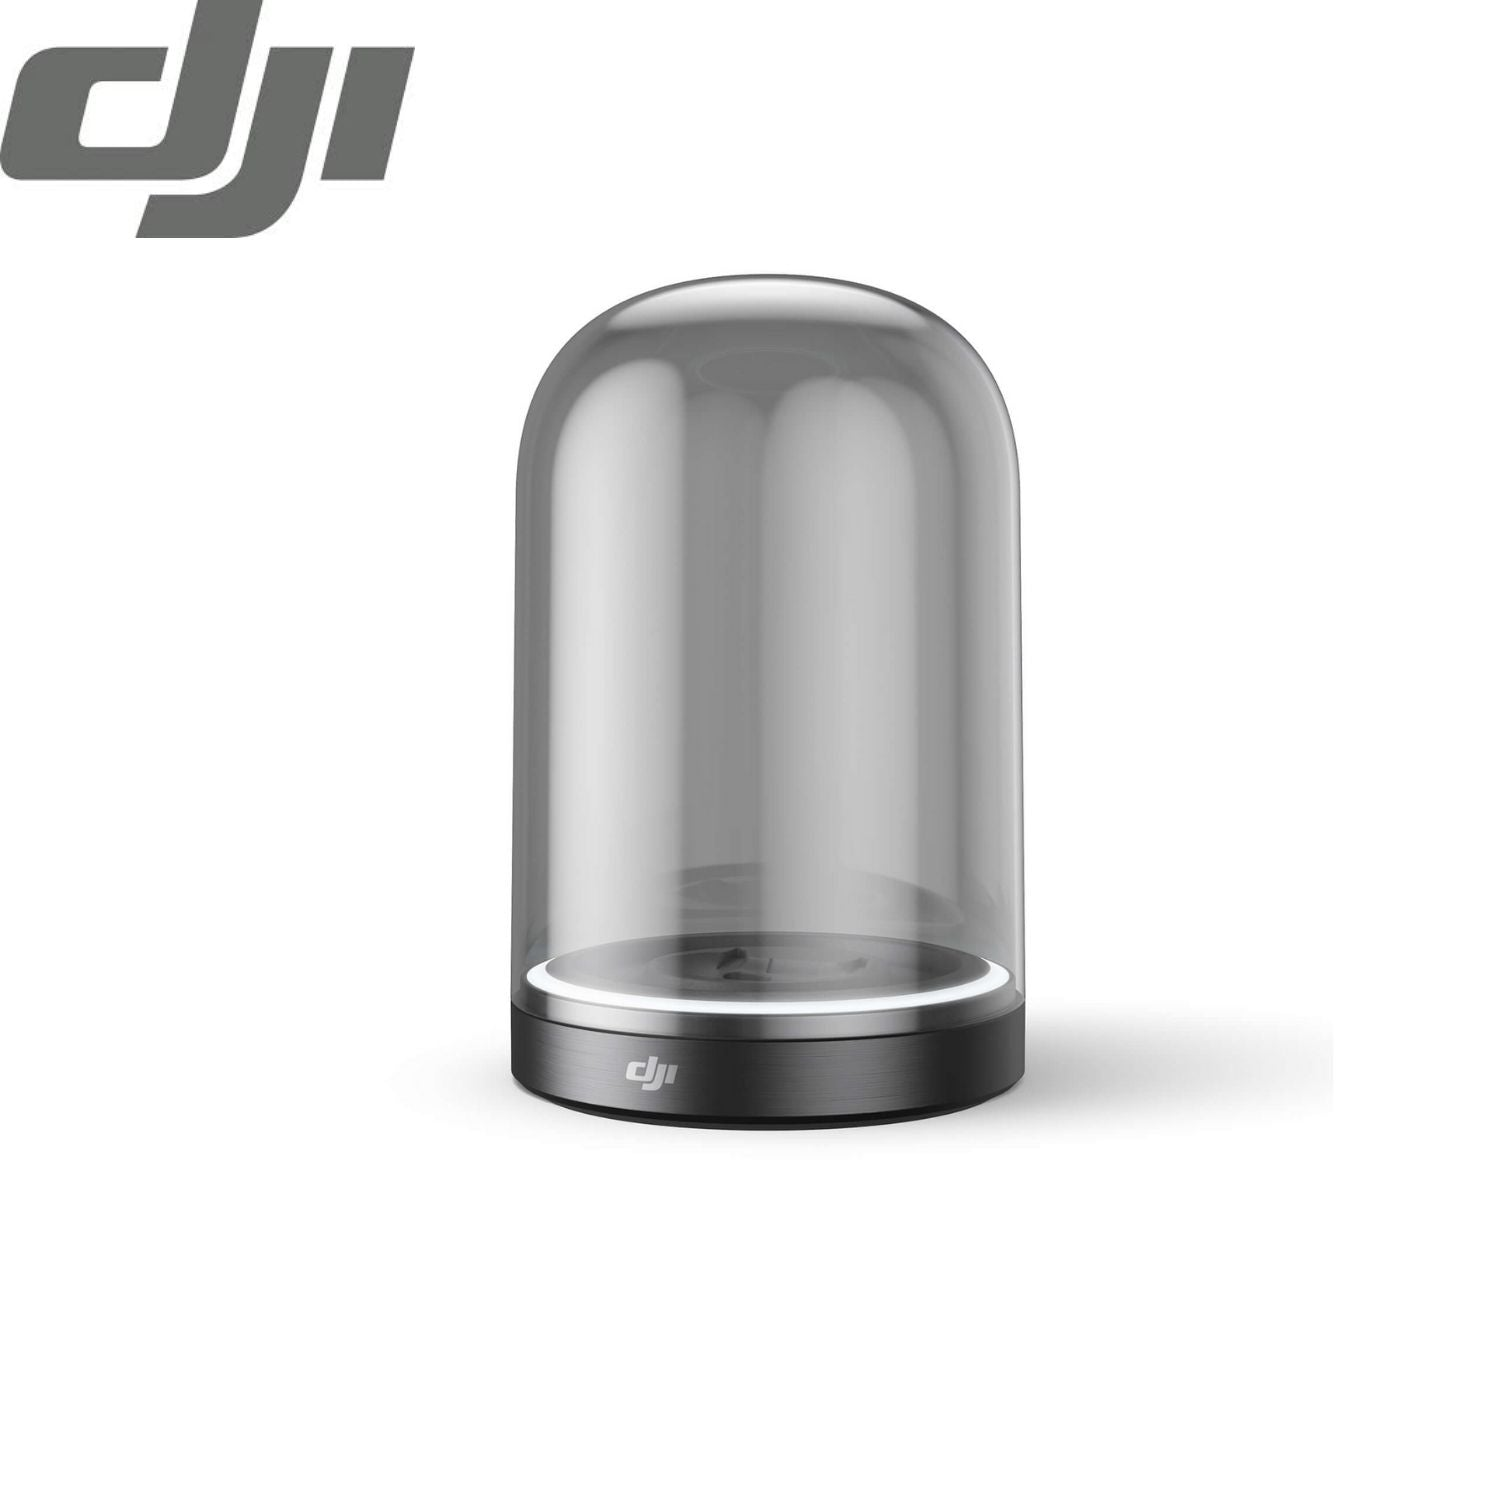 DJI Mini 2 Charging Display Base